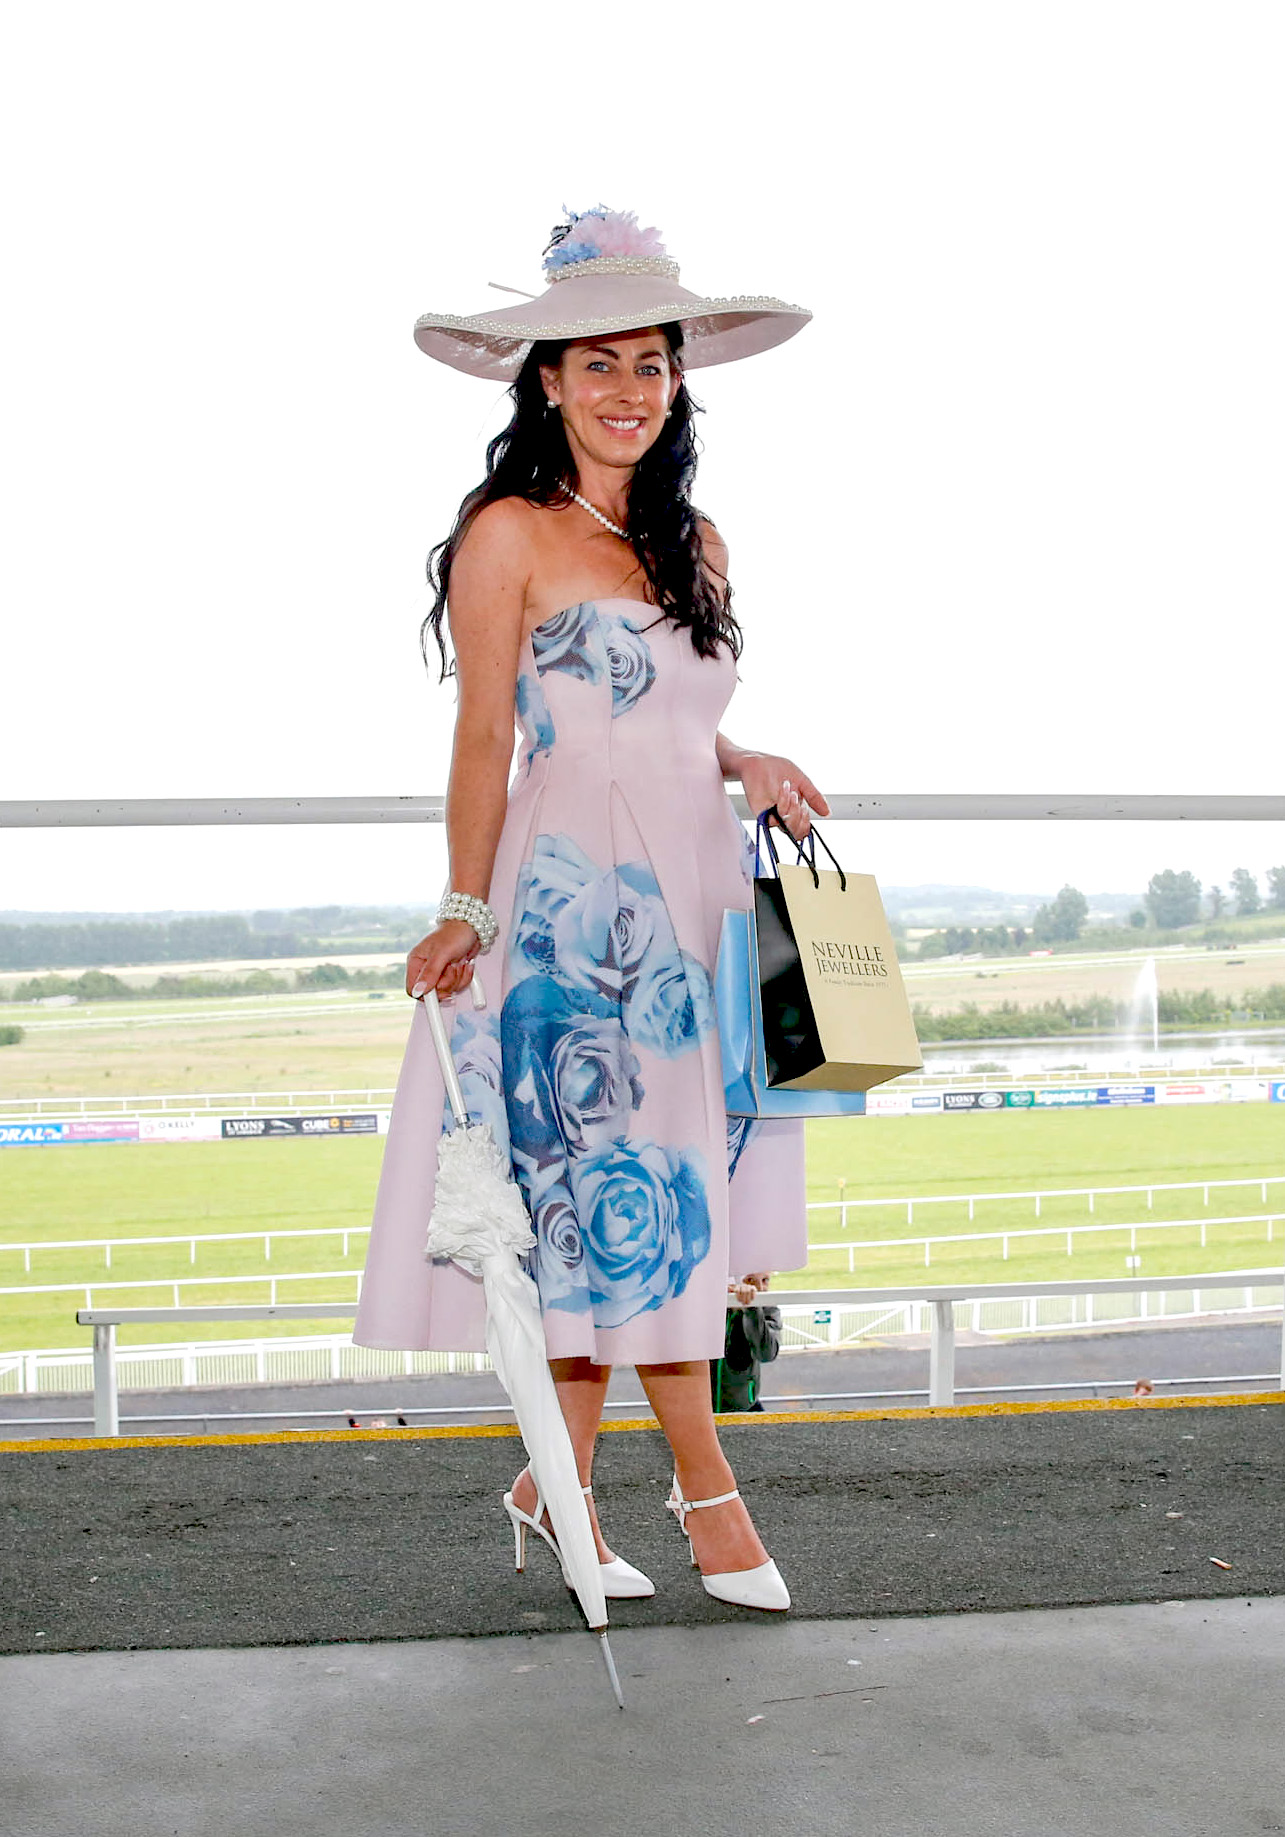 11-6-16 coral.ie Race Day at Limerick Racecourse.Most stylish competition' sponsored by Newbridge Silverware & Neville Jewellers, The Crescent Shopping Centre.Winner was Grace Flynn from Kilcornan.Picture: Keith Wiseman